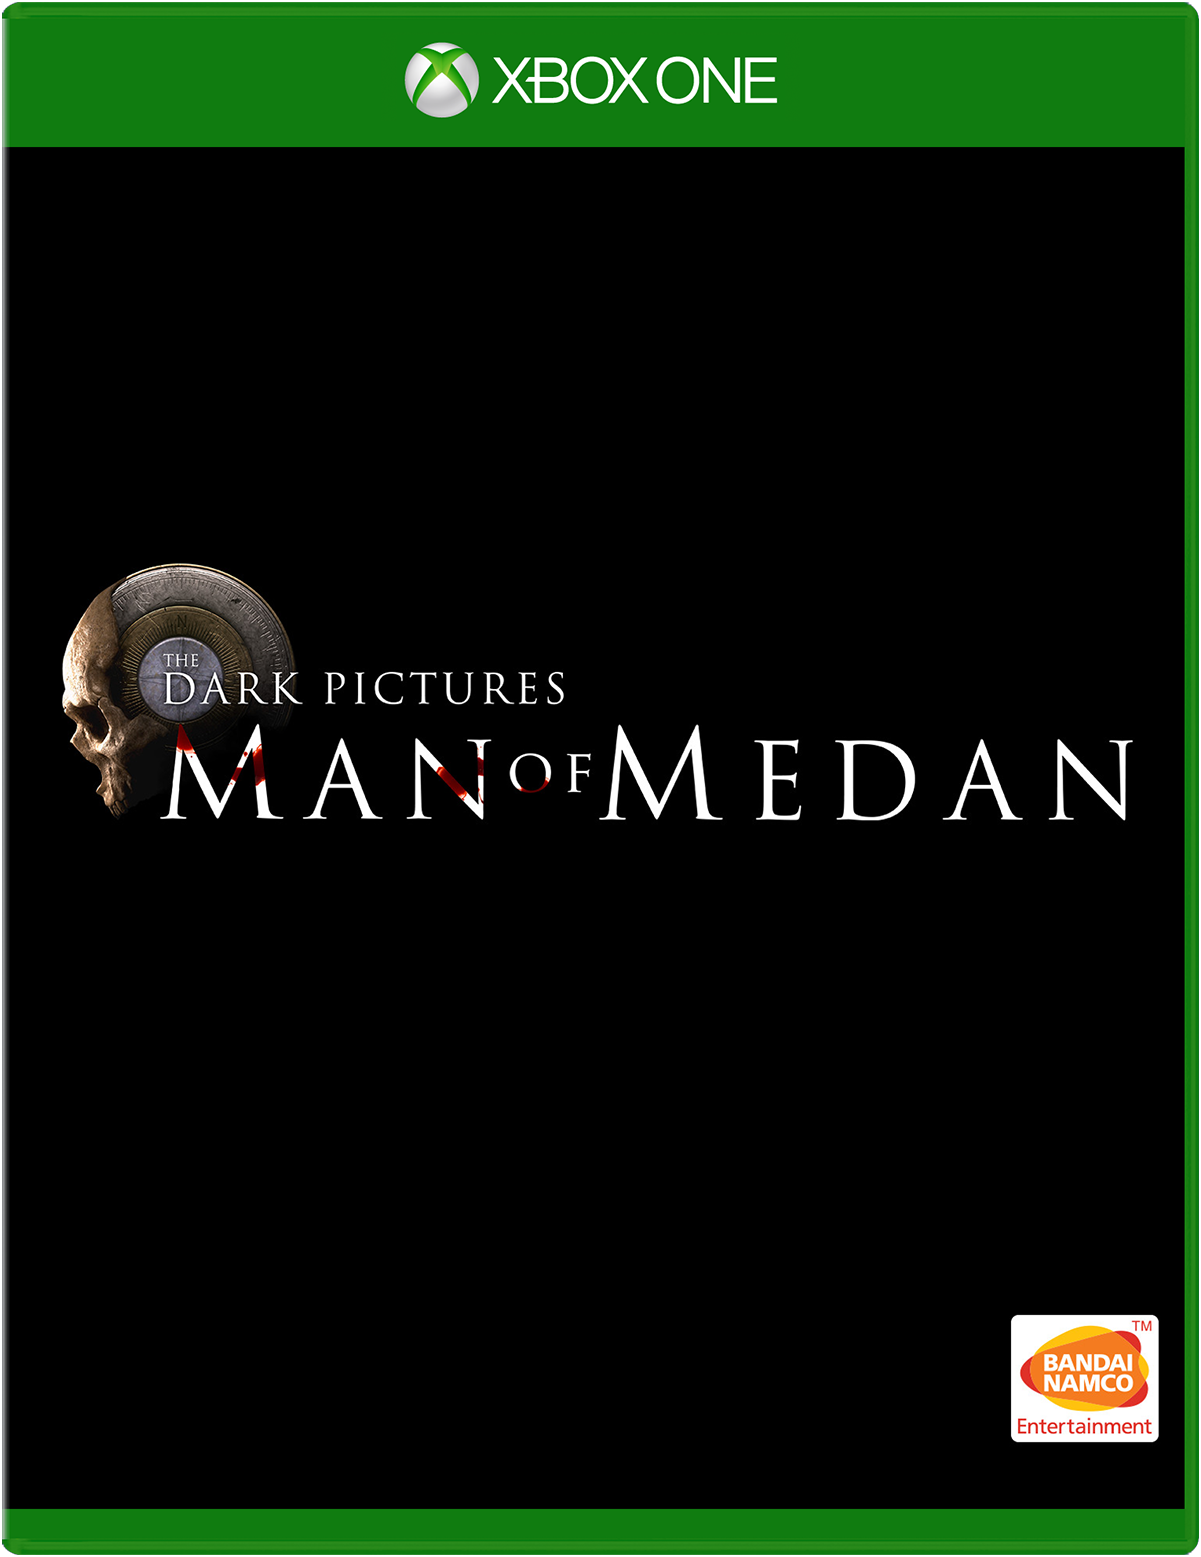 Cover of The Dark Pictures - Man of Medan for Xbox One